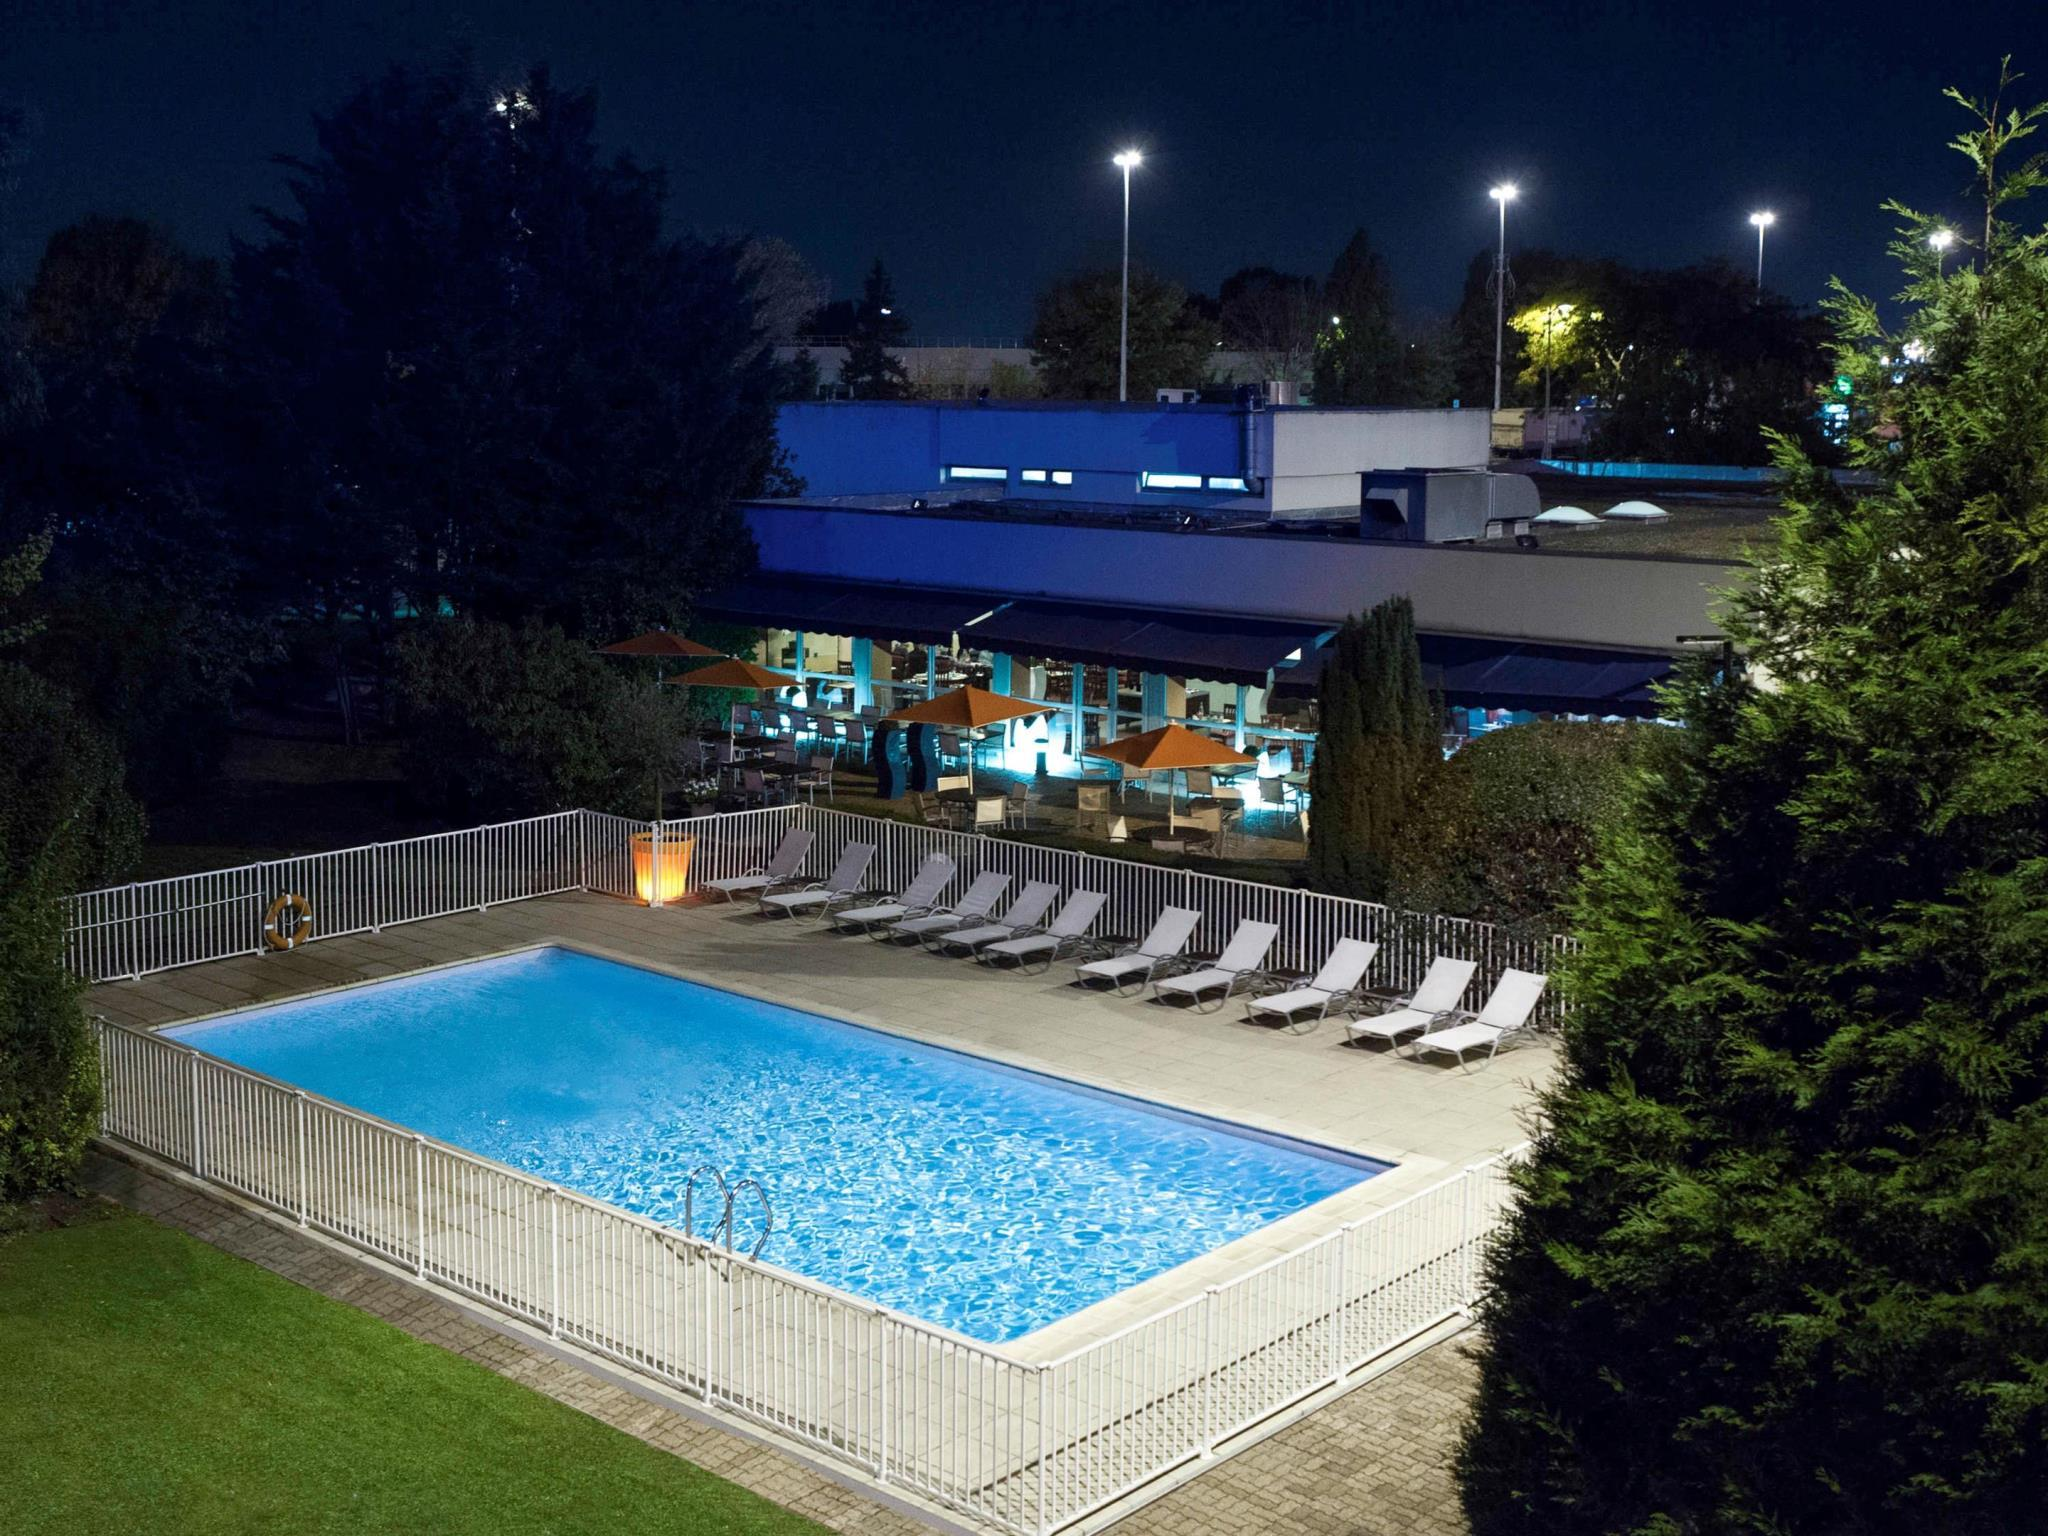 More about Novotel Paris Nord Expo Aulnay